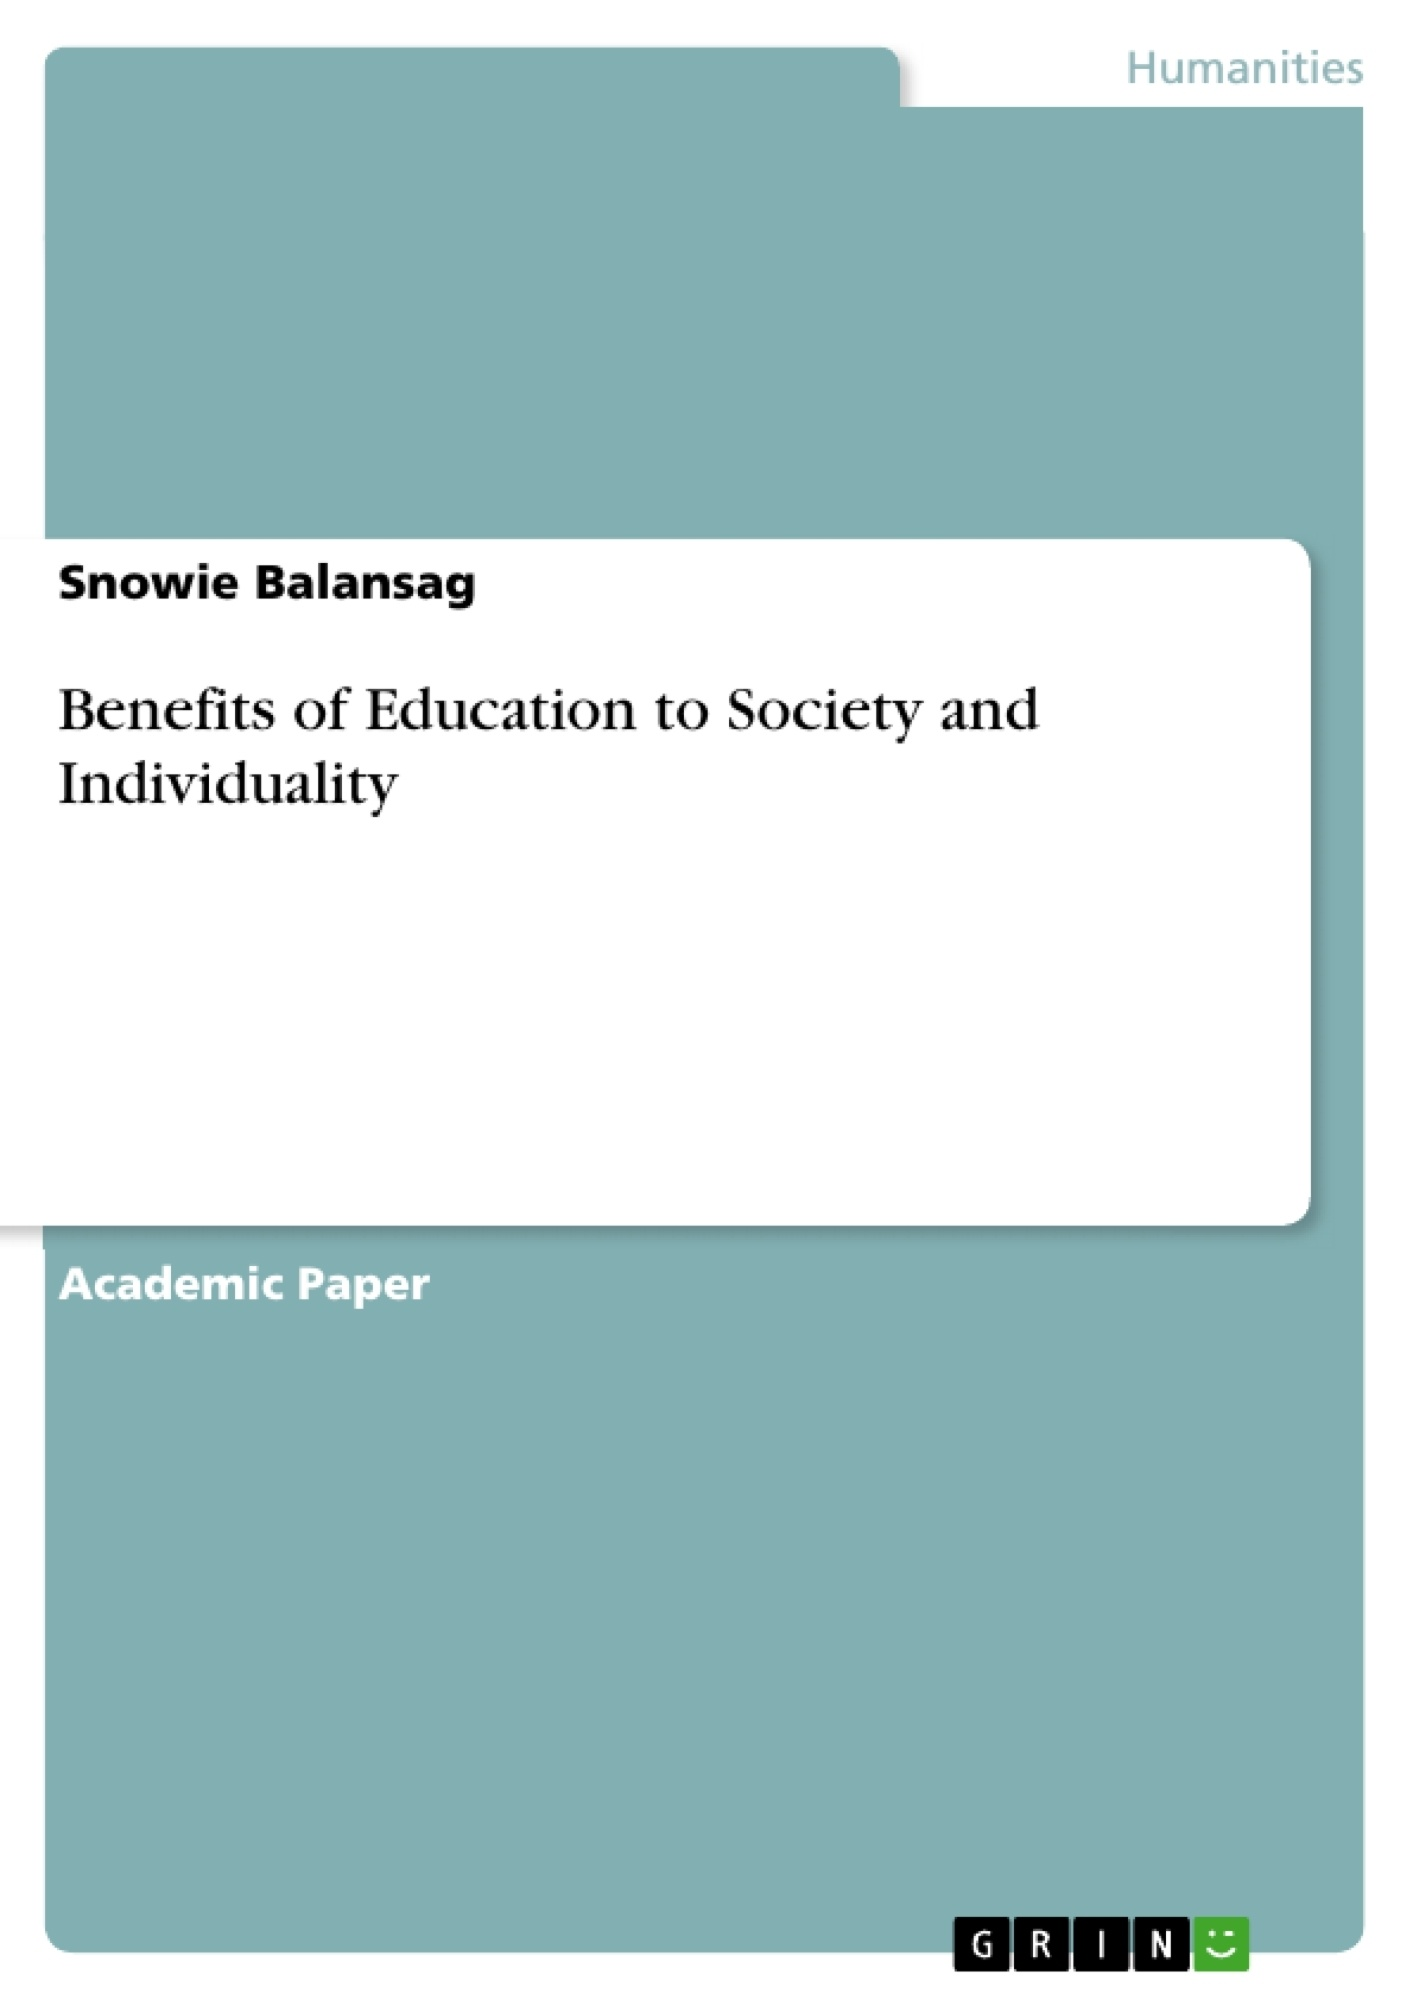 what are the benefits of education to society